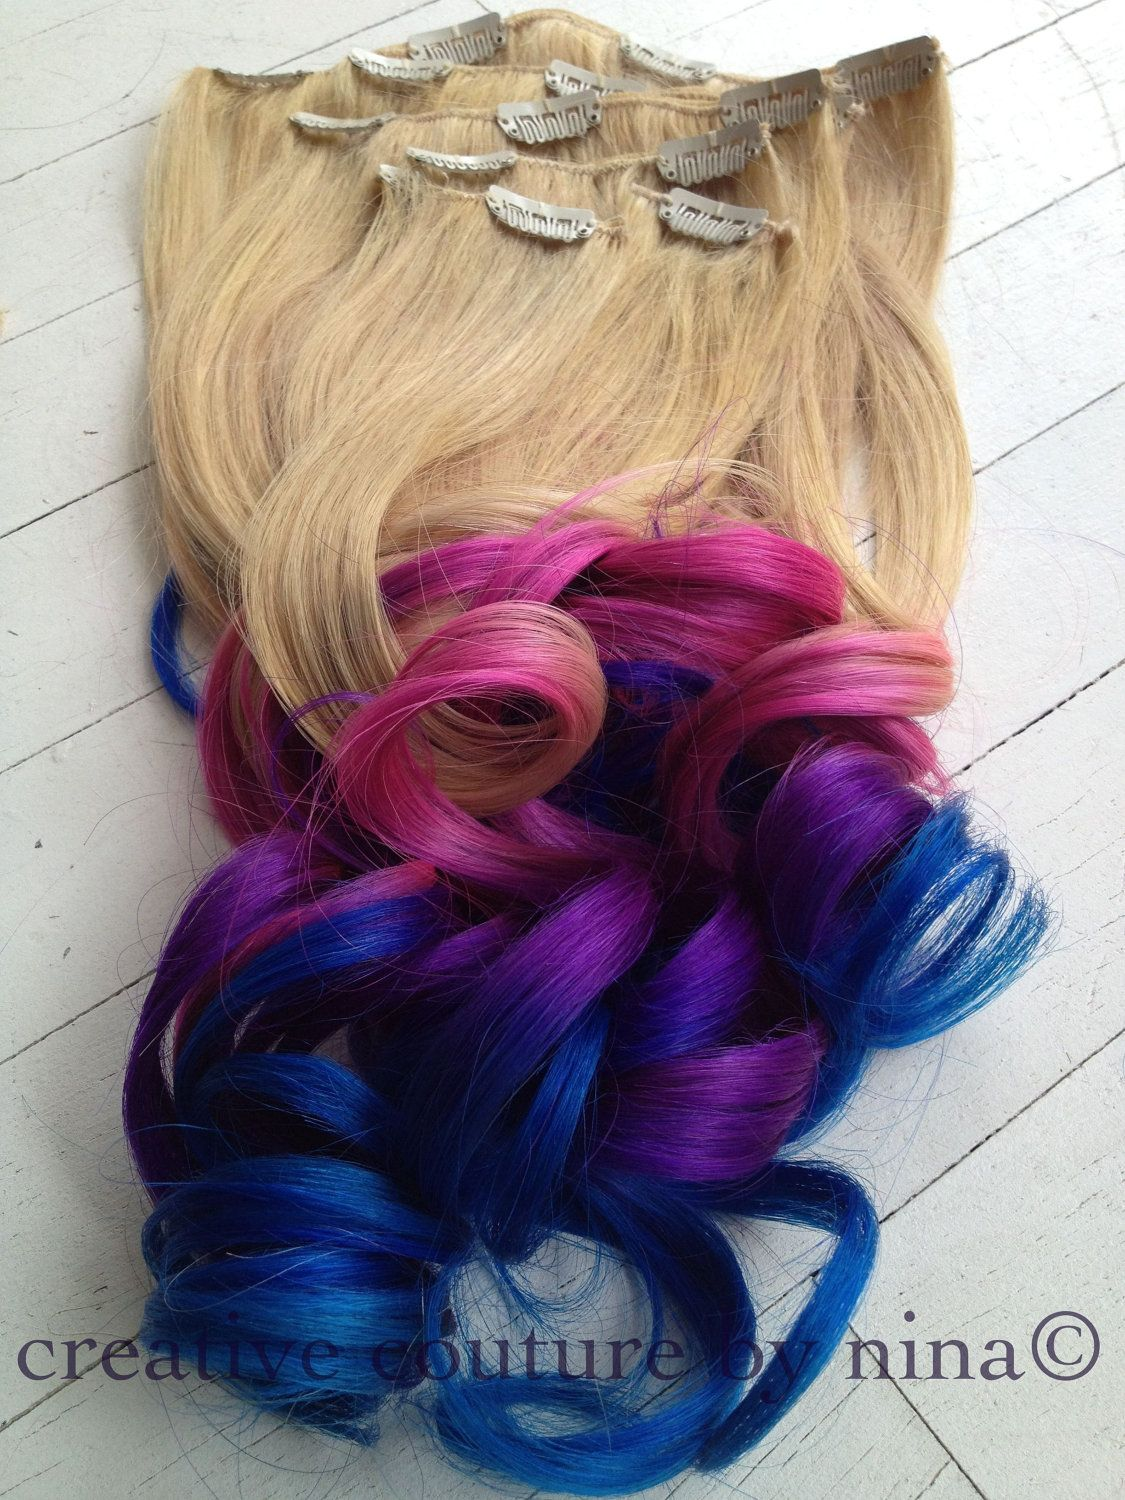 Ombre Hairtie Dye Hair Blonde Hair Extensions Pink Ombrepurple